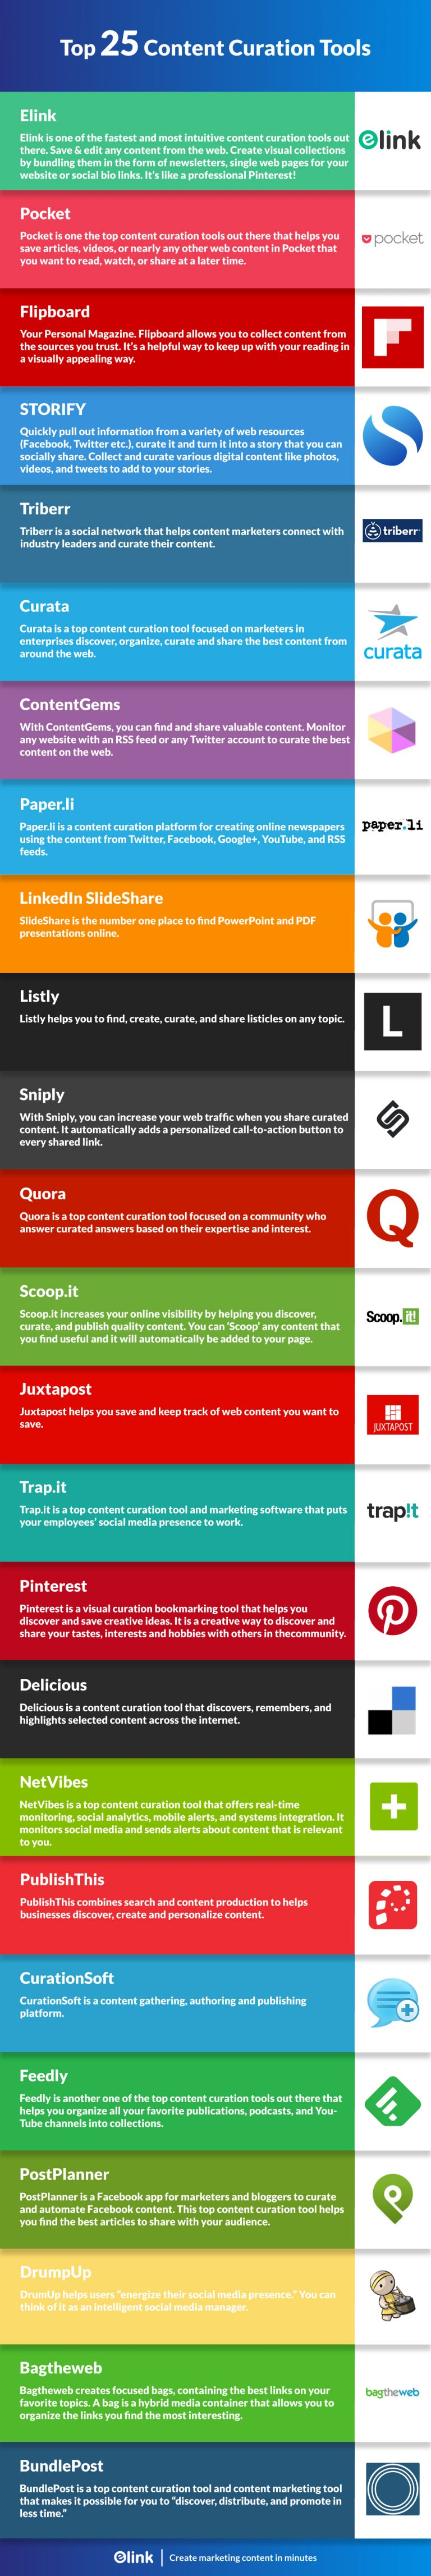 Top 25 Content Curation Tools infographic